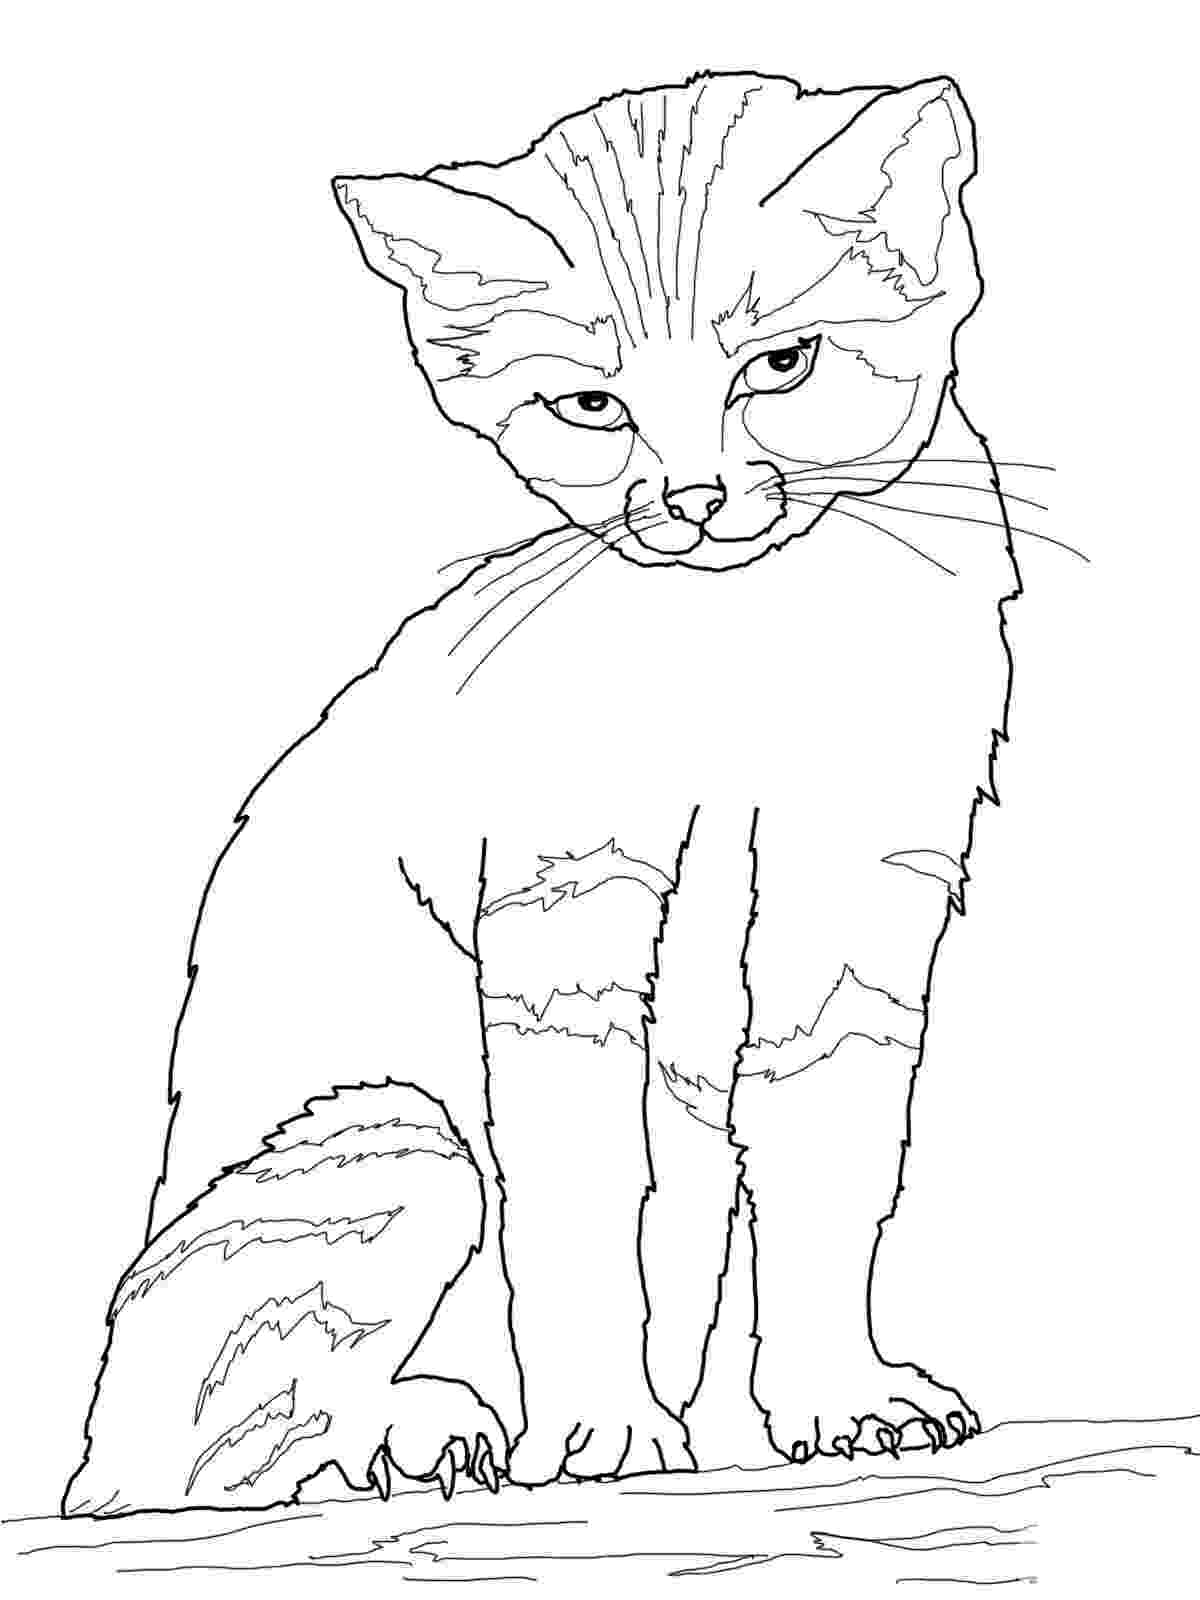 cat coloring pages to print free printable cat coloring pages for kids pages to coloring print cat